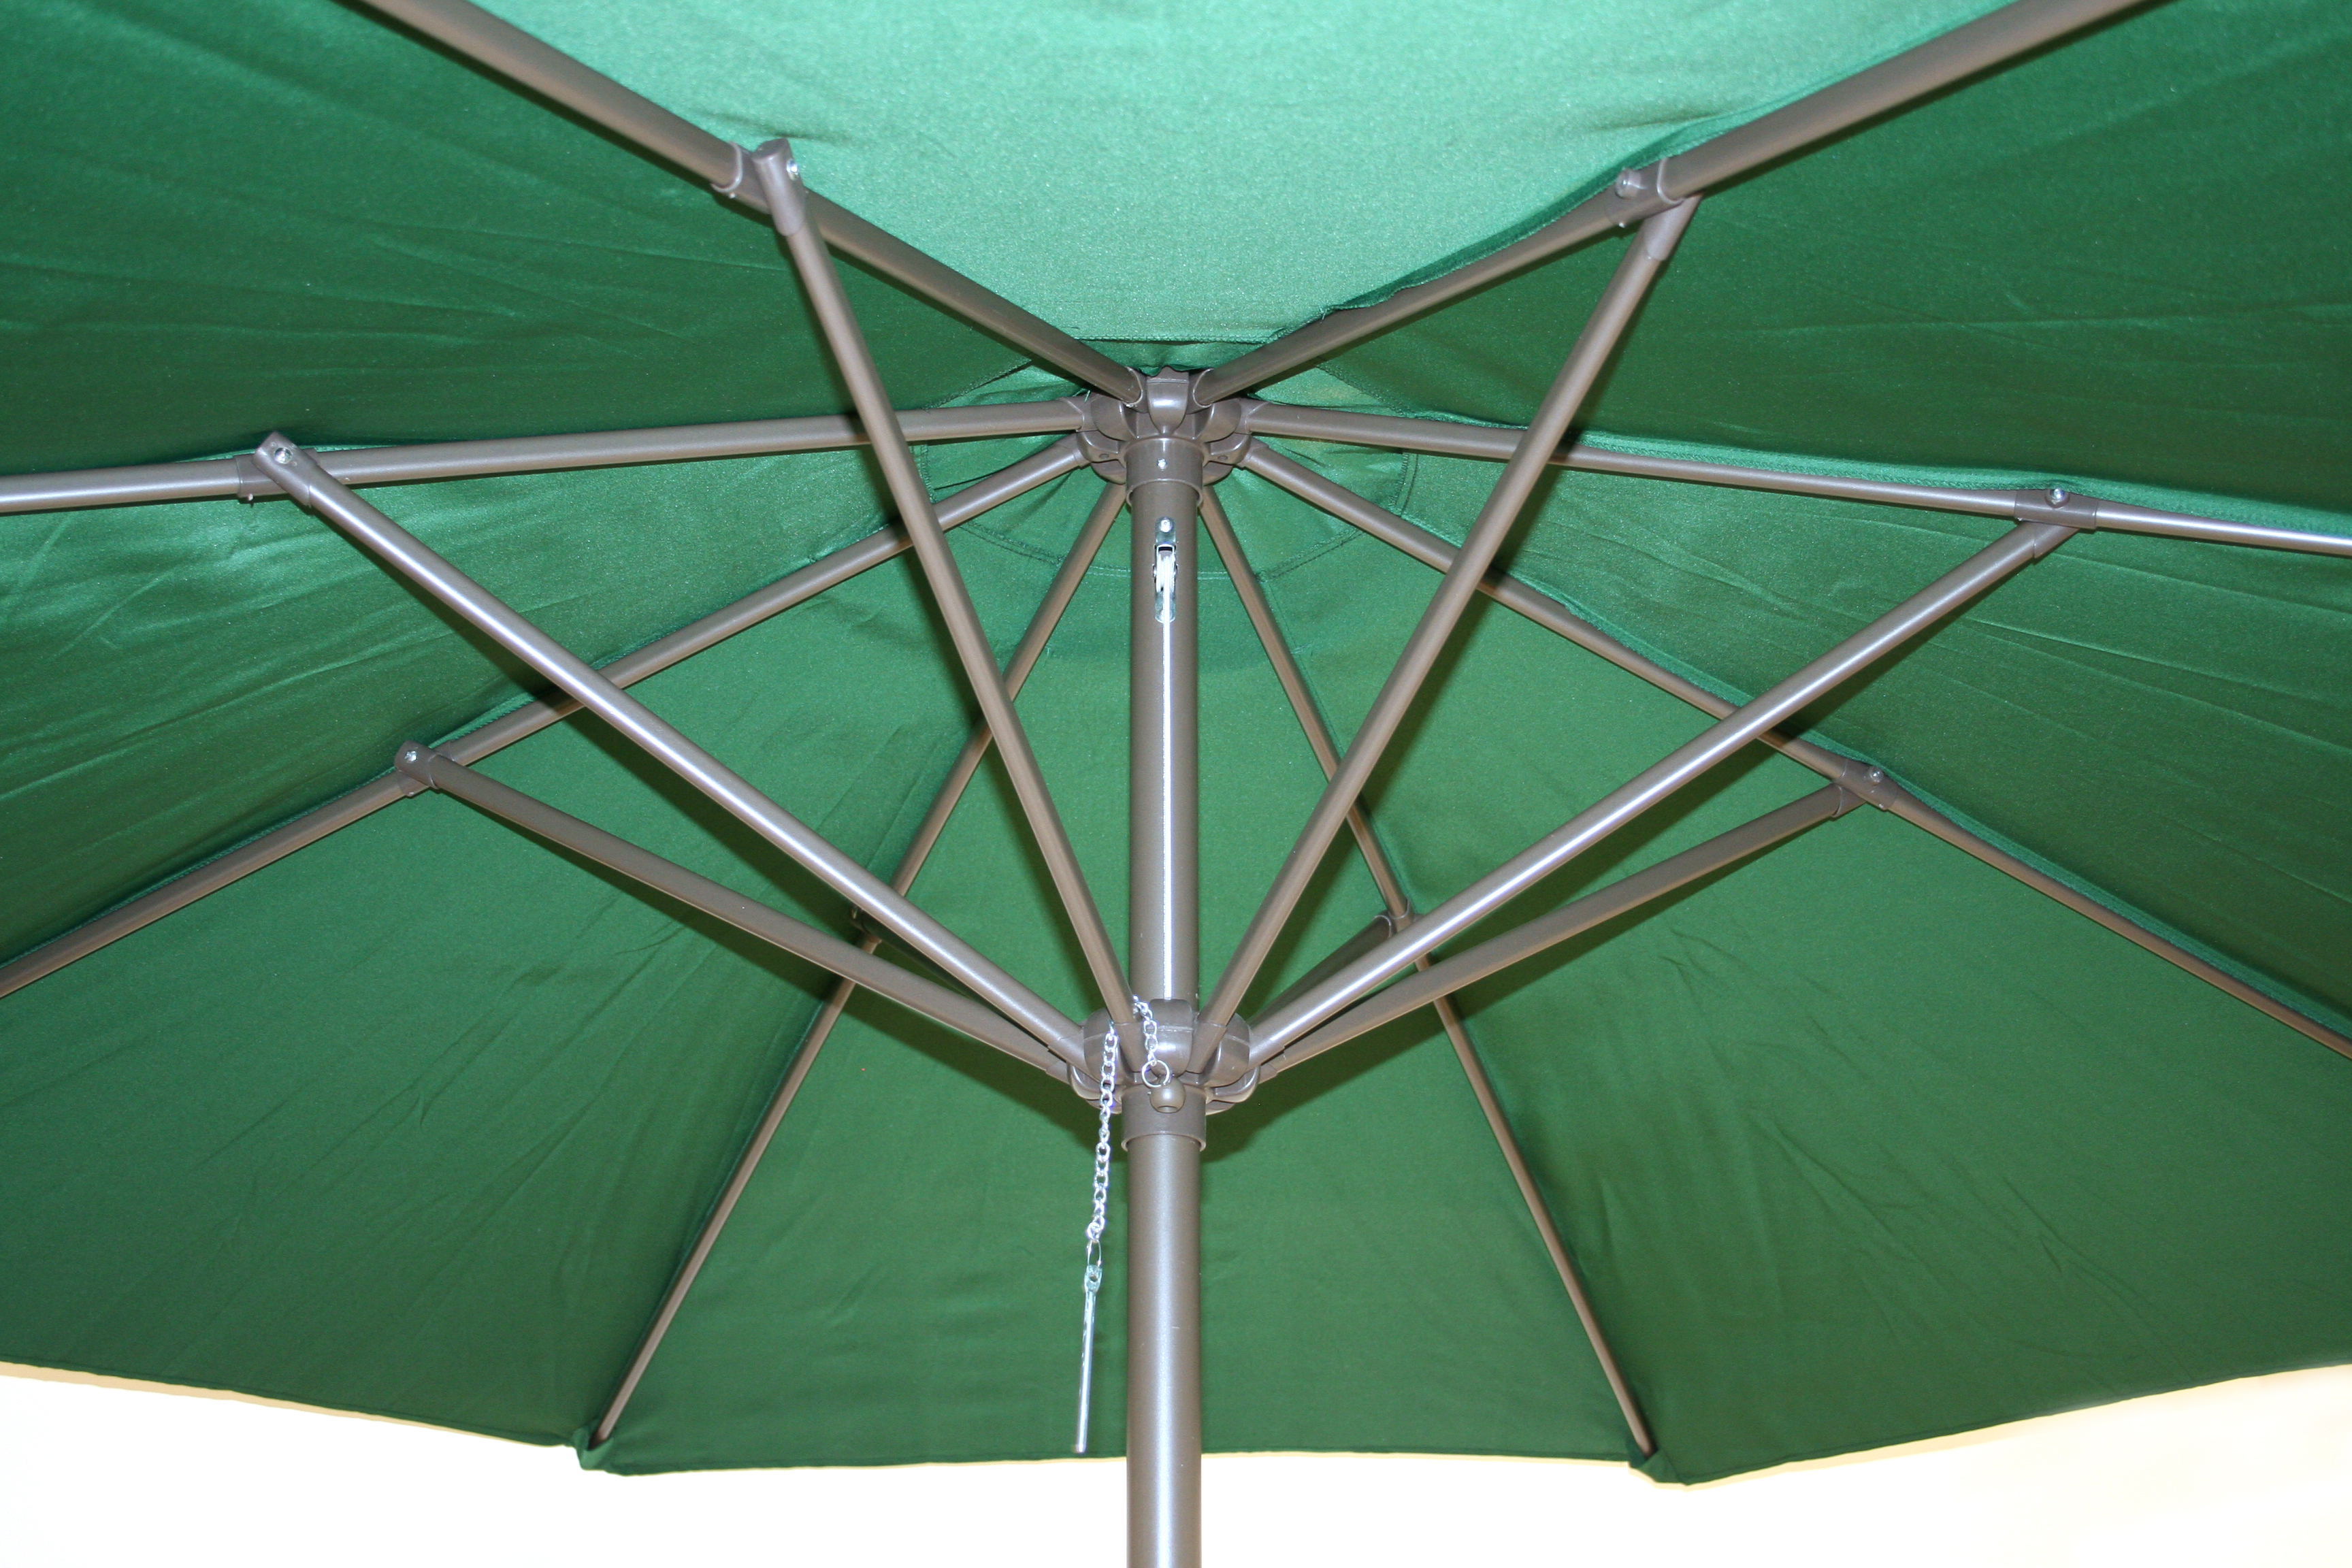 Large Green Umbrella Parasol - BE Event Hire